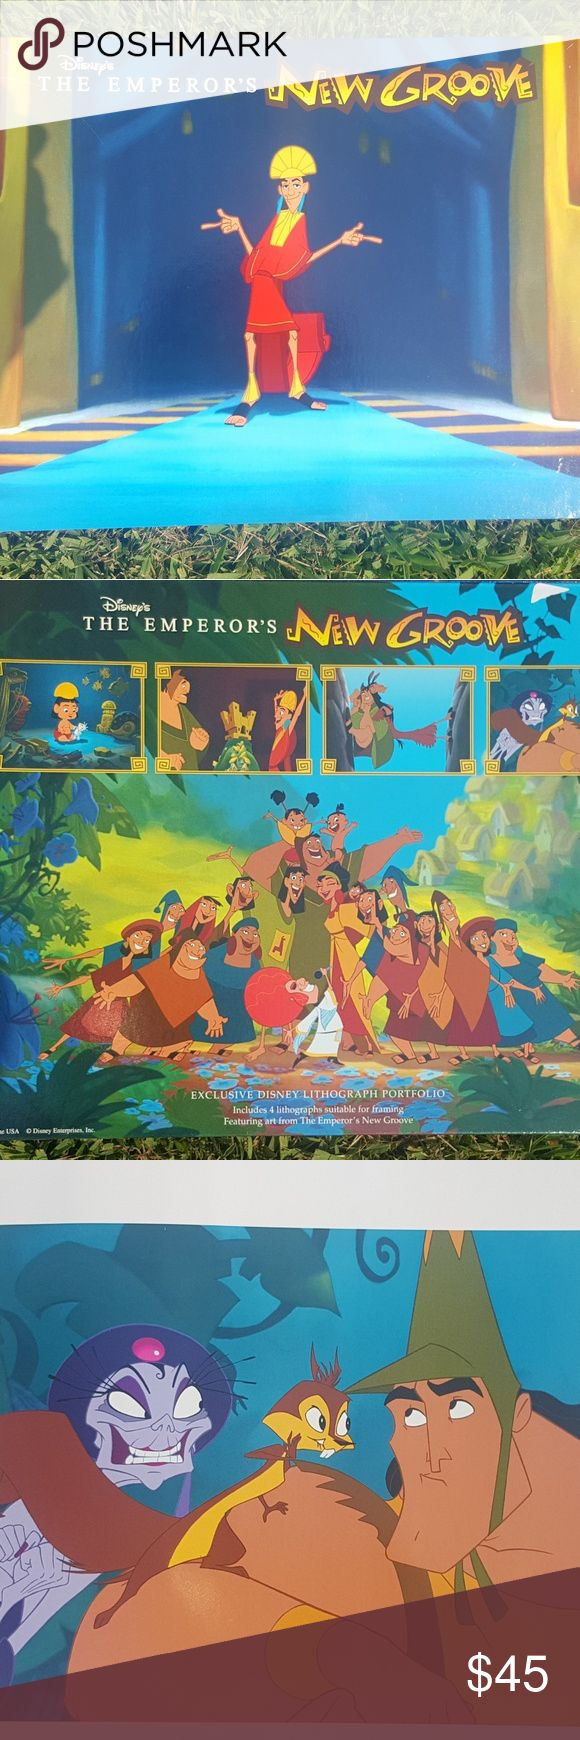 Disney 's The Emperor 's New Groove Authentic Disney The Emperor 's New Groove Lithograph.  Excellent condition,  perfect for framing and makes an amazing gift for the BIG Disney fan in your life! Taking offers!!! 💞 Other